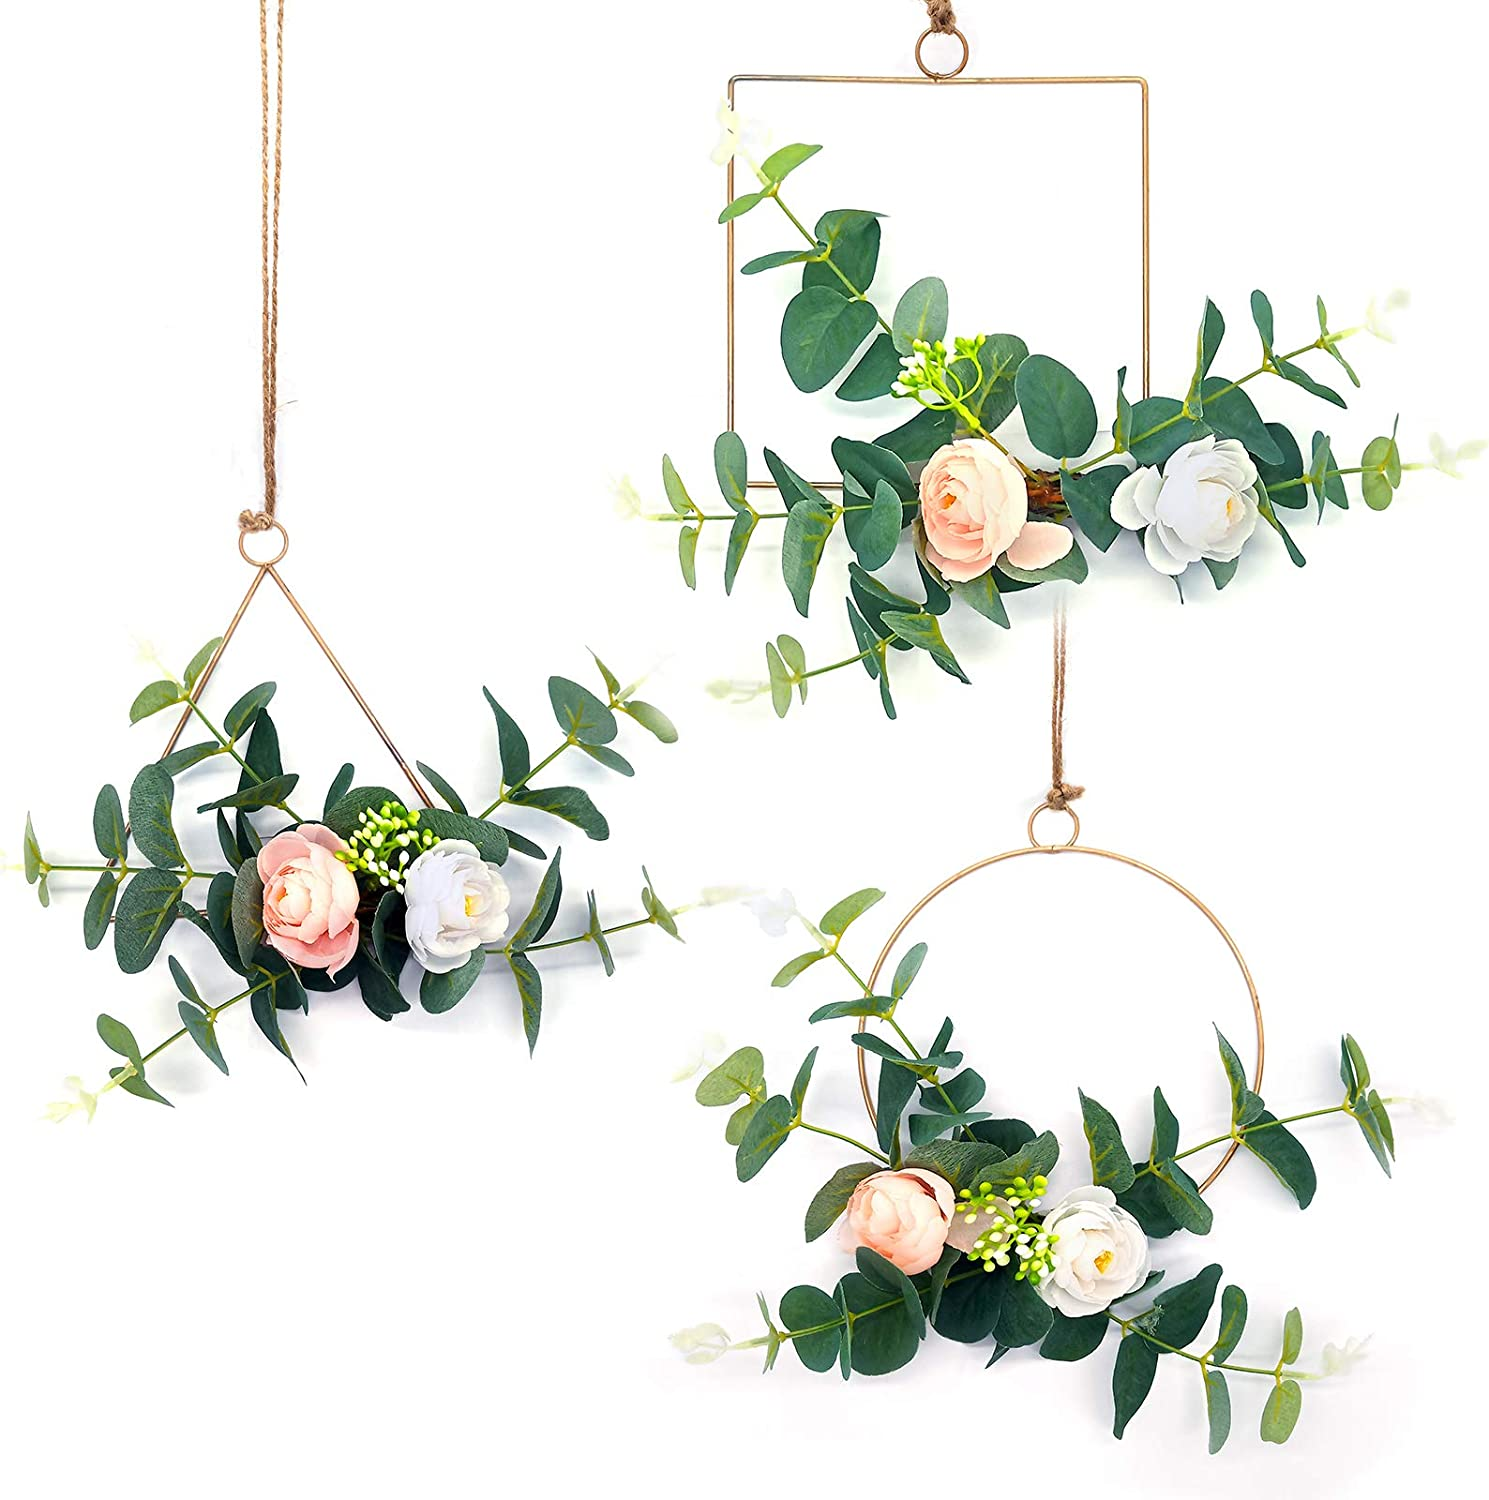 Onlyhome Hanging Hoop Flowers Wreath for Decoration, Rose and Eucalyptus Greenery Floral Hoop Wreath for Home and Wedding Decor, Set of 3